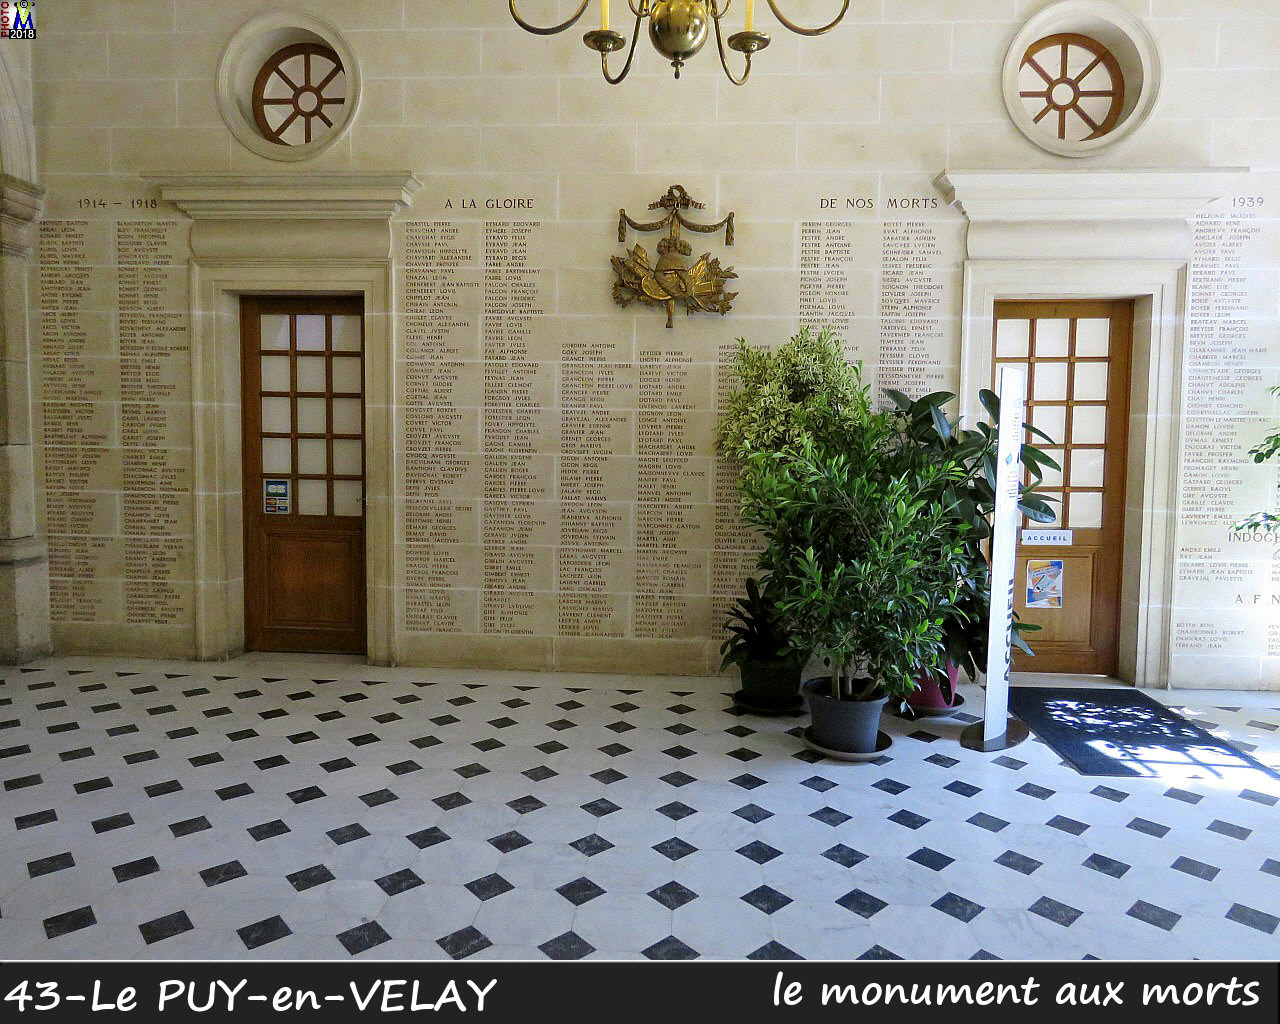 43PUY-EN-VELAY_morts_100.jpg